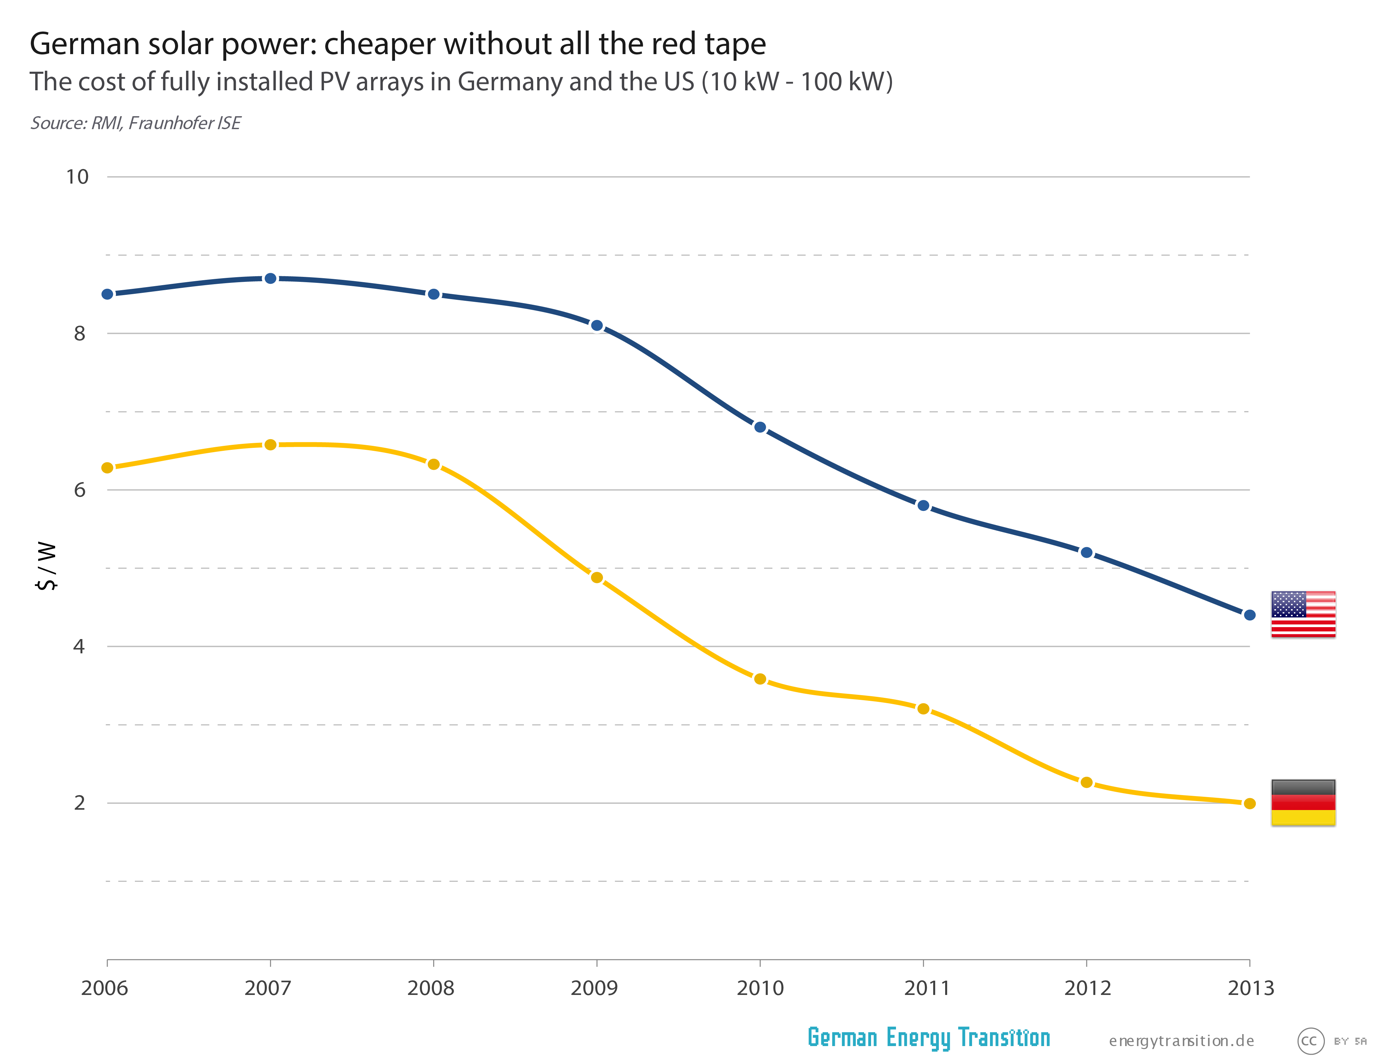 We have been using Fraunhofer's PV overview ourselves for a few years. Here, our chart from 2015 shows how the price of installed arrays have dropped over the year's – and, with the help of data from Rocky Mountain Institute, we show how much cheaper German feed-in tariffs made PV relative to US prices.